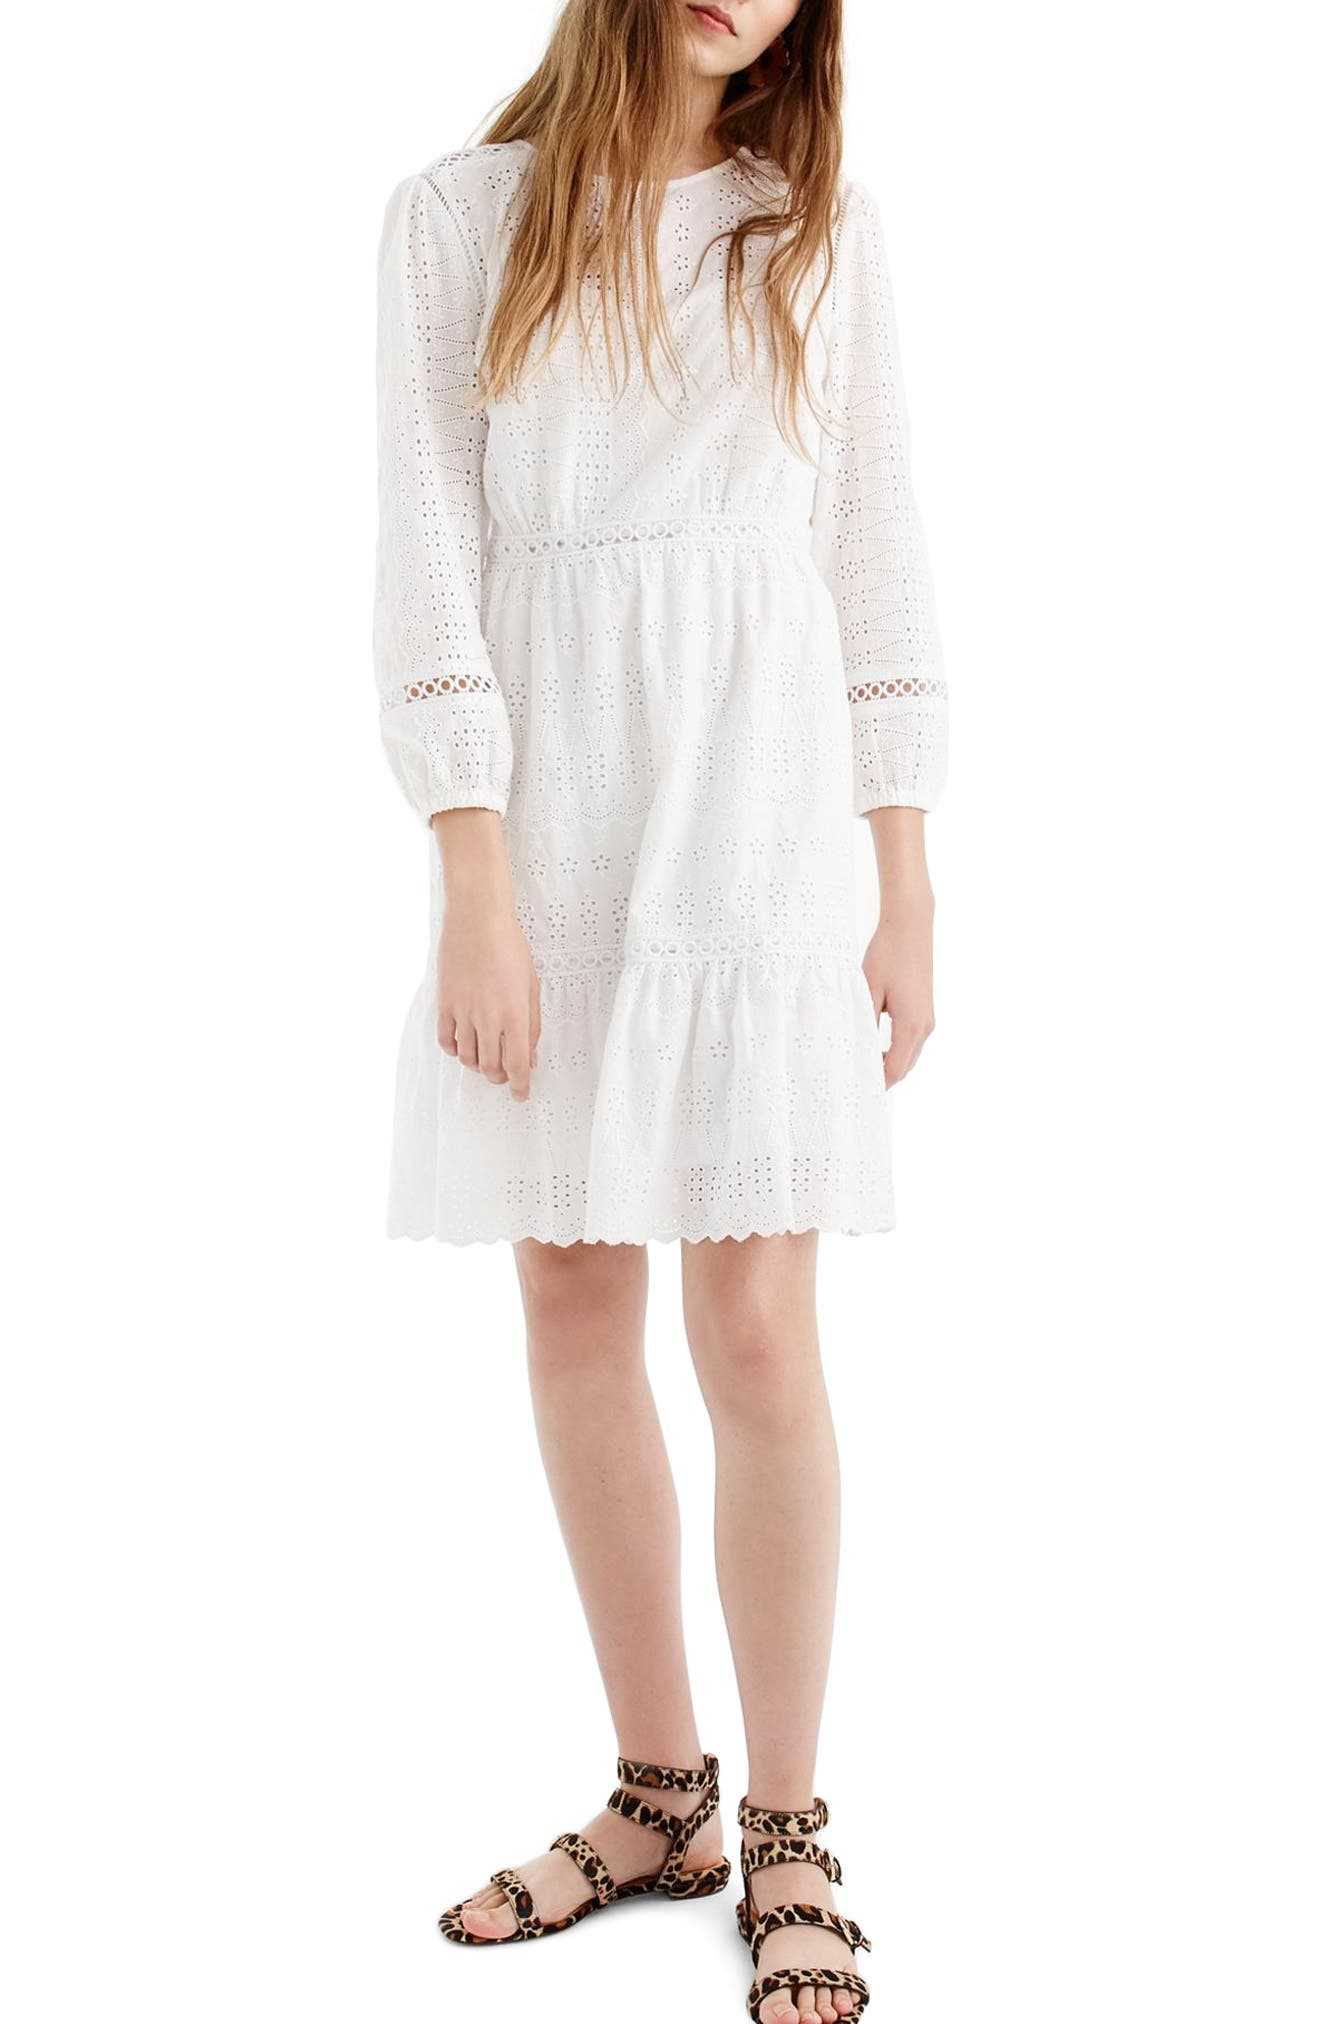 J.Crew Long Sleeve Embroidered Dress,                         Main,                         color, White